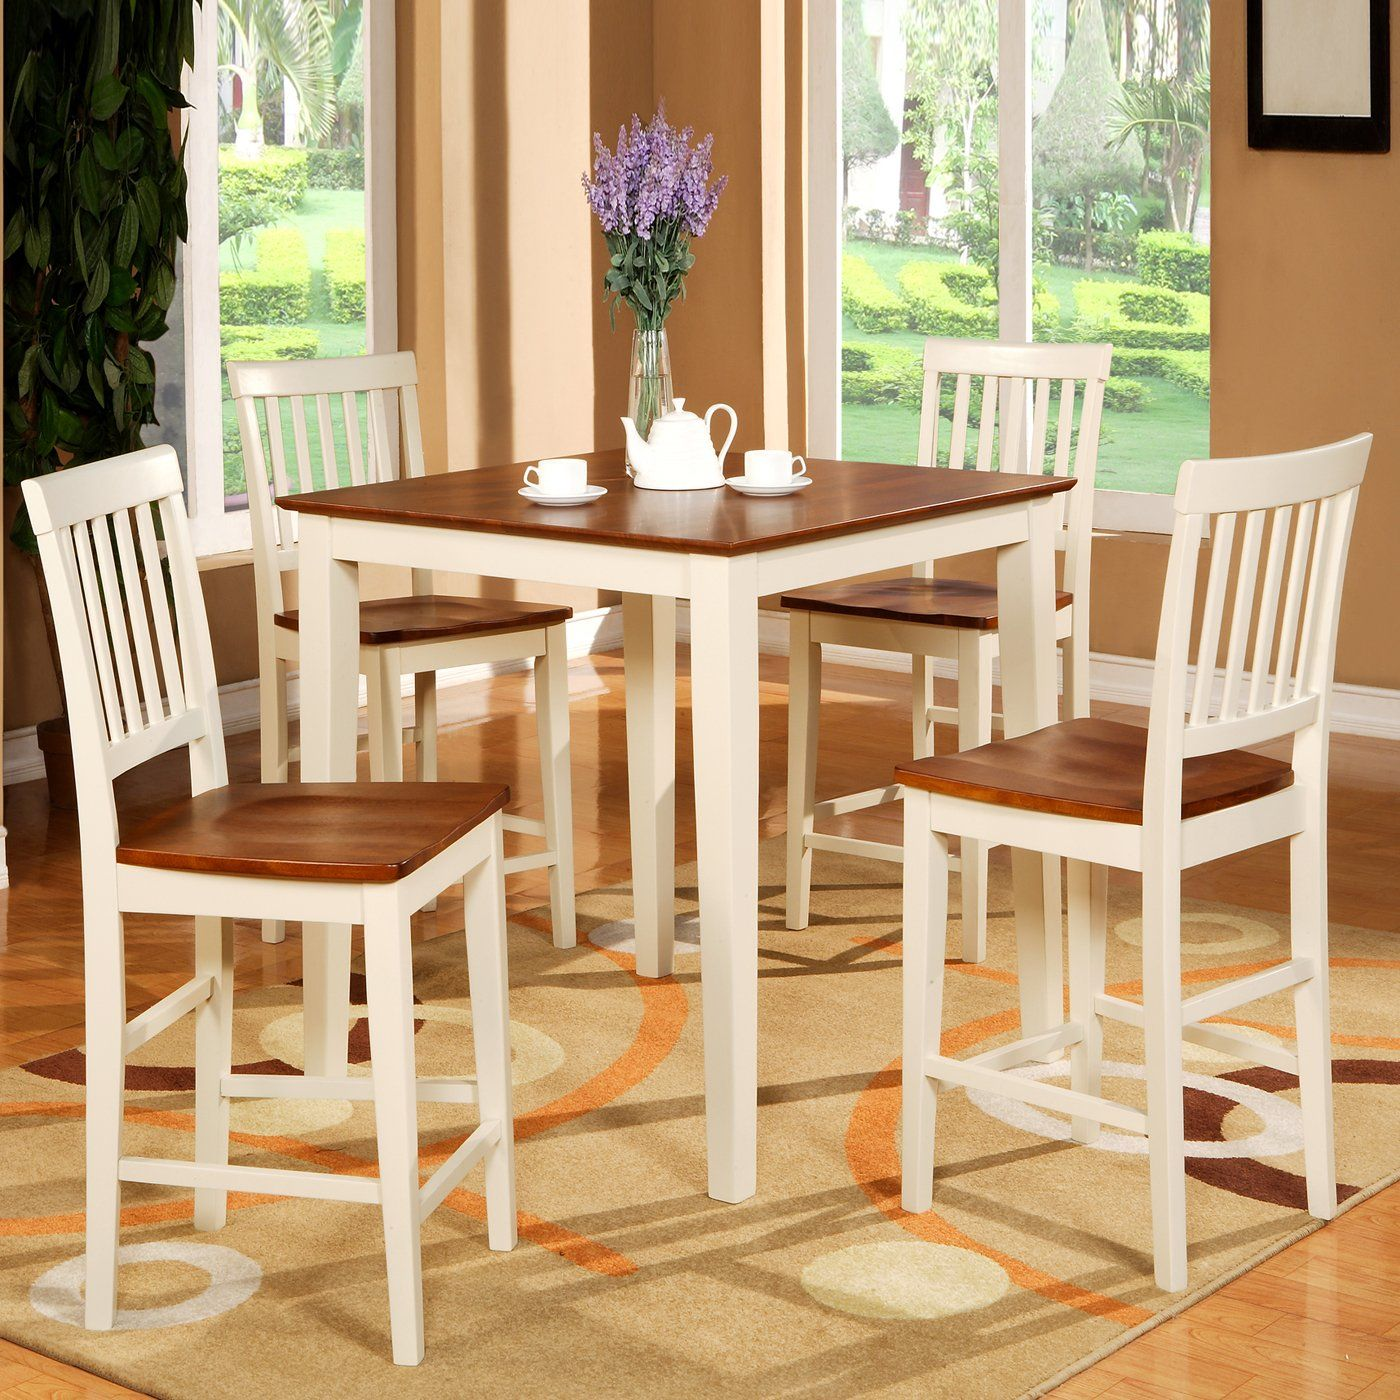 Wooden Imports VN10 Vernon Five Piece Counter Height Wood Seat ...